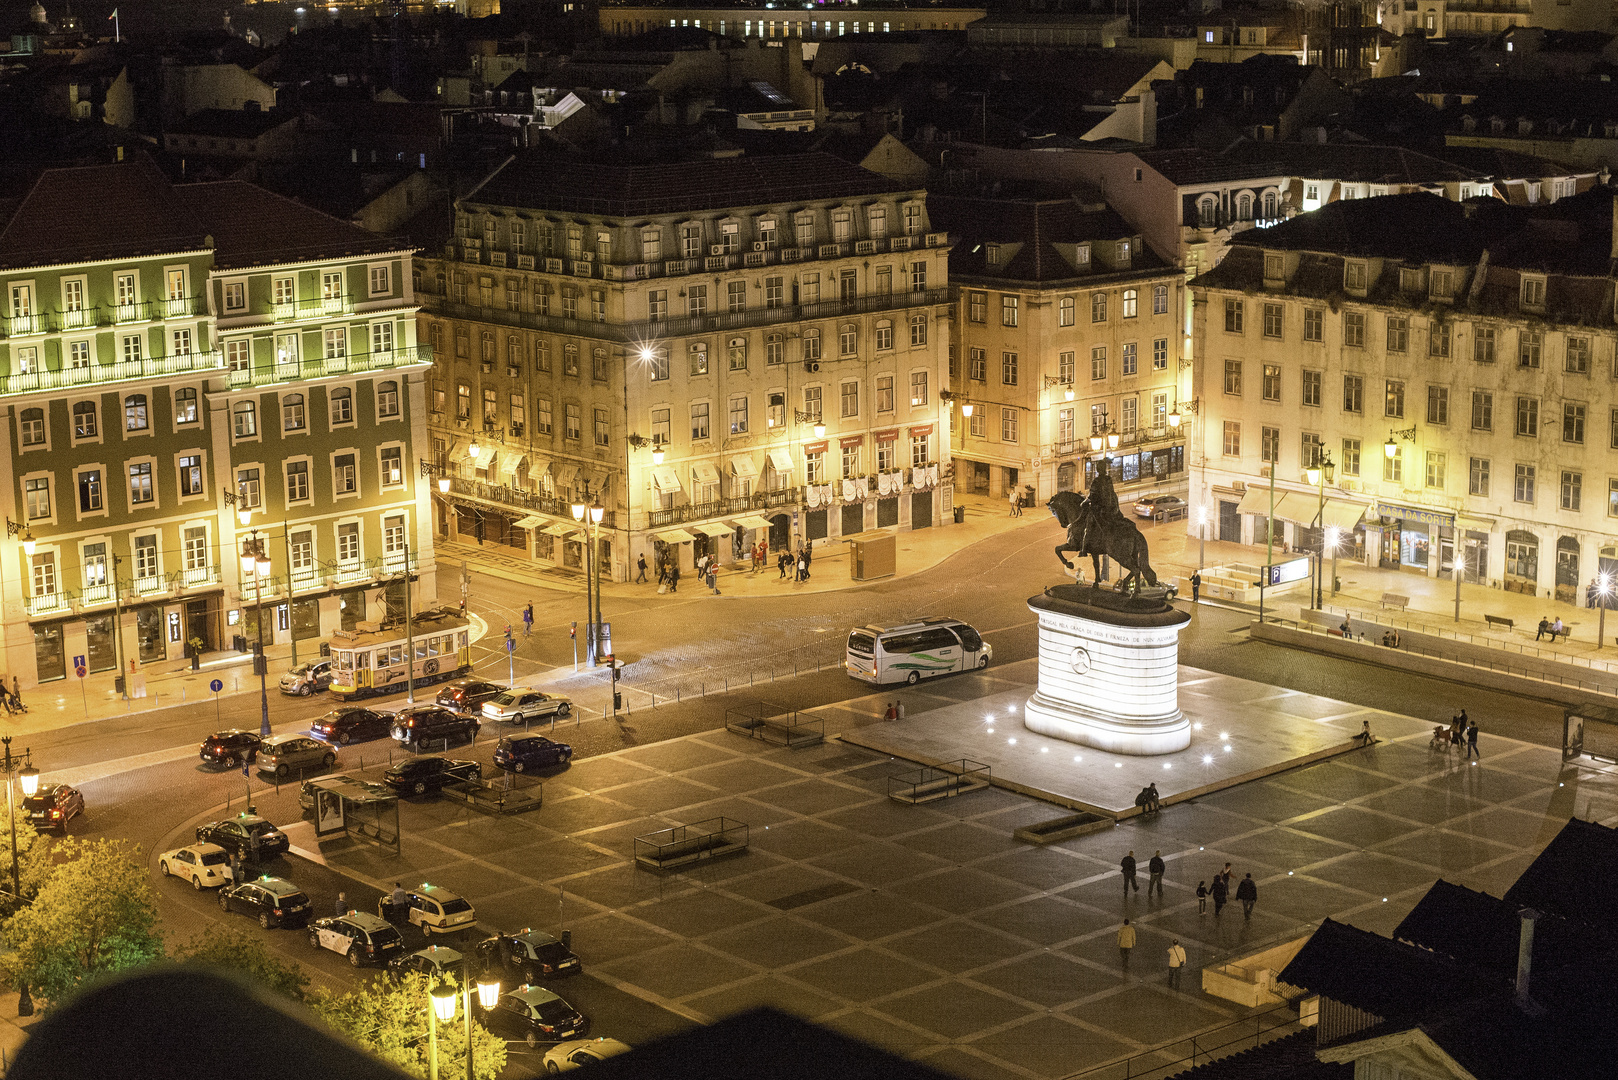 View at the night square